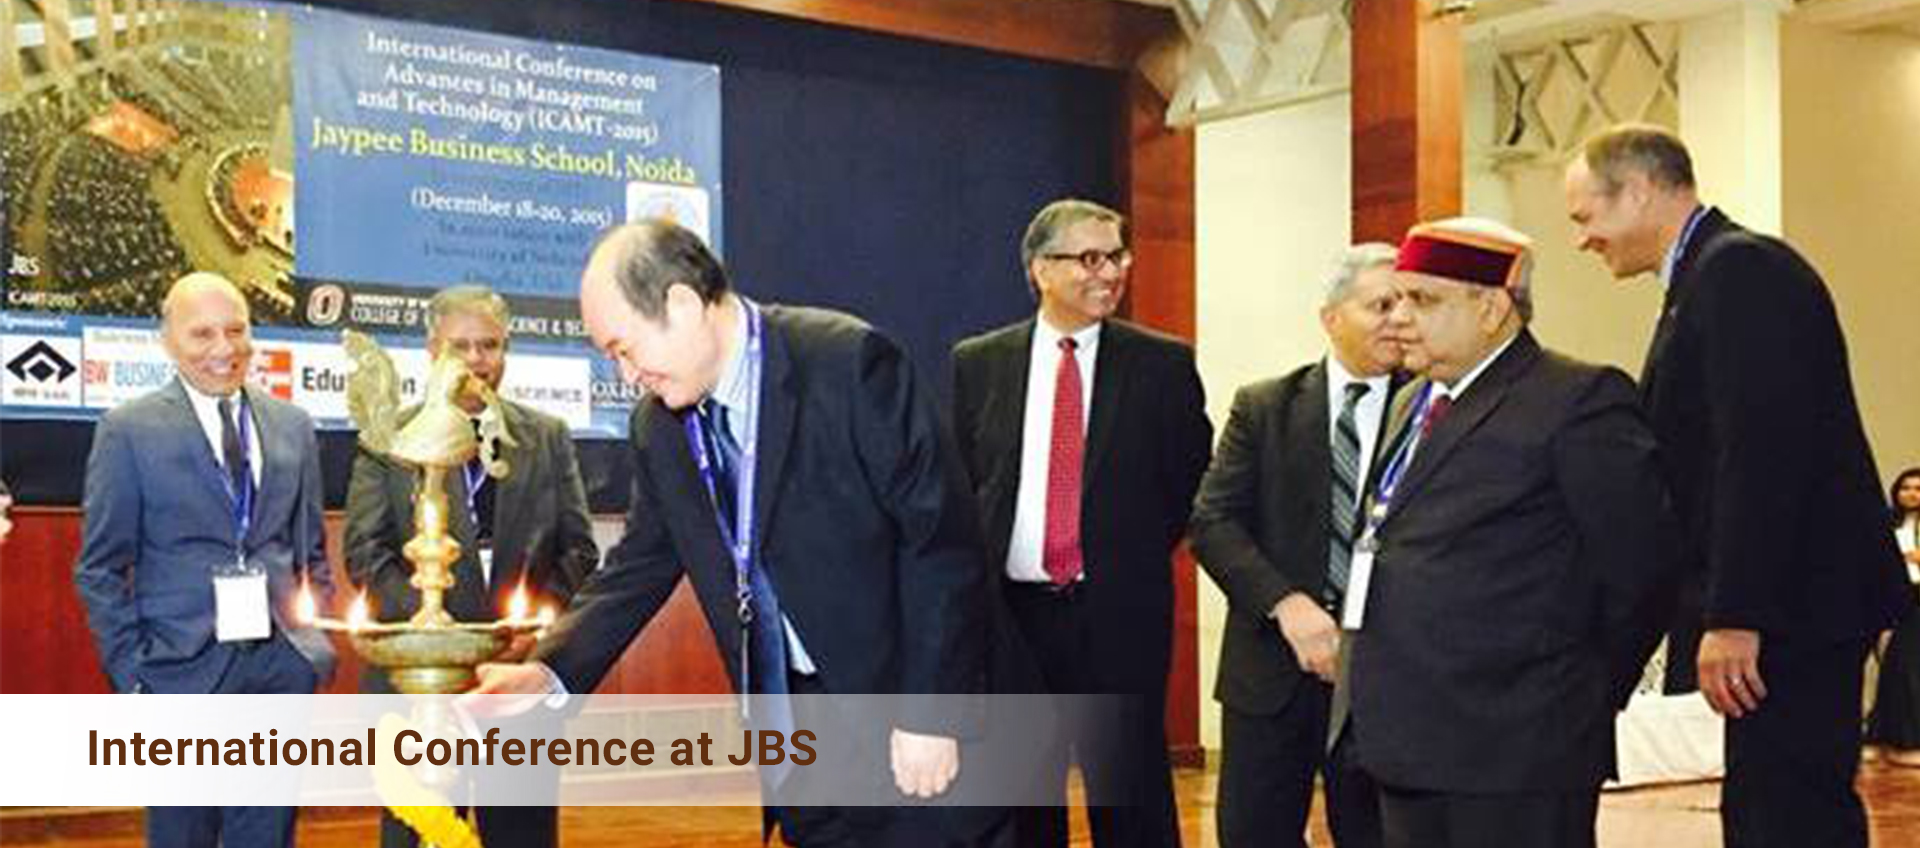 International Conference at JBS